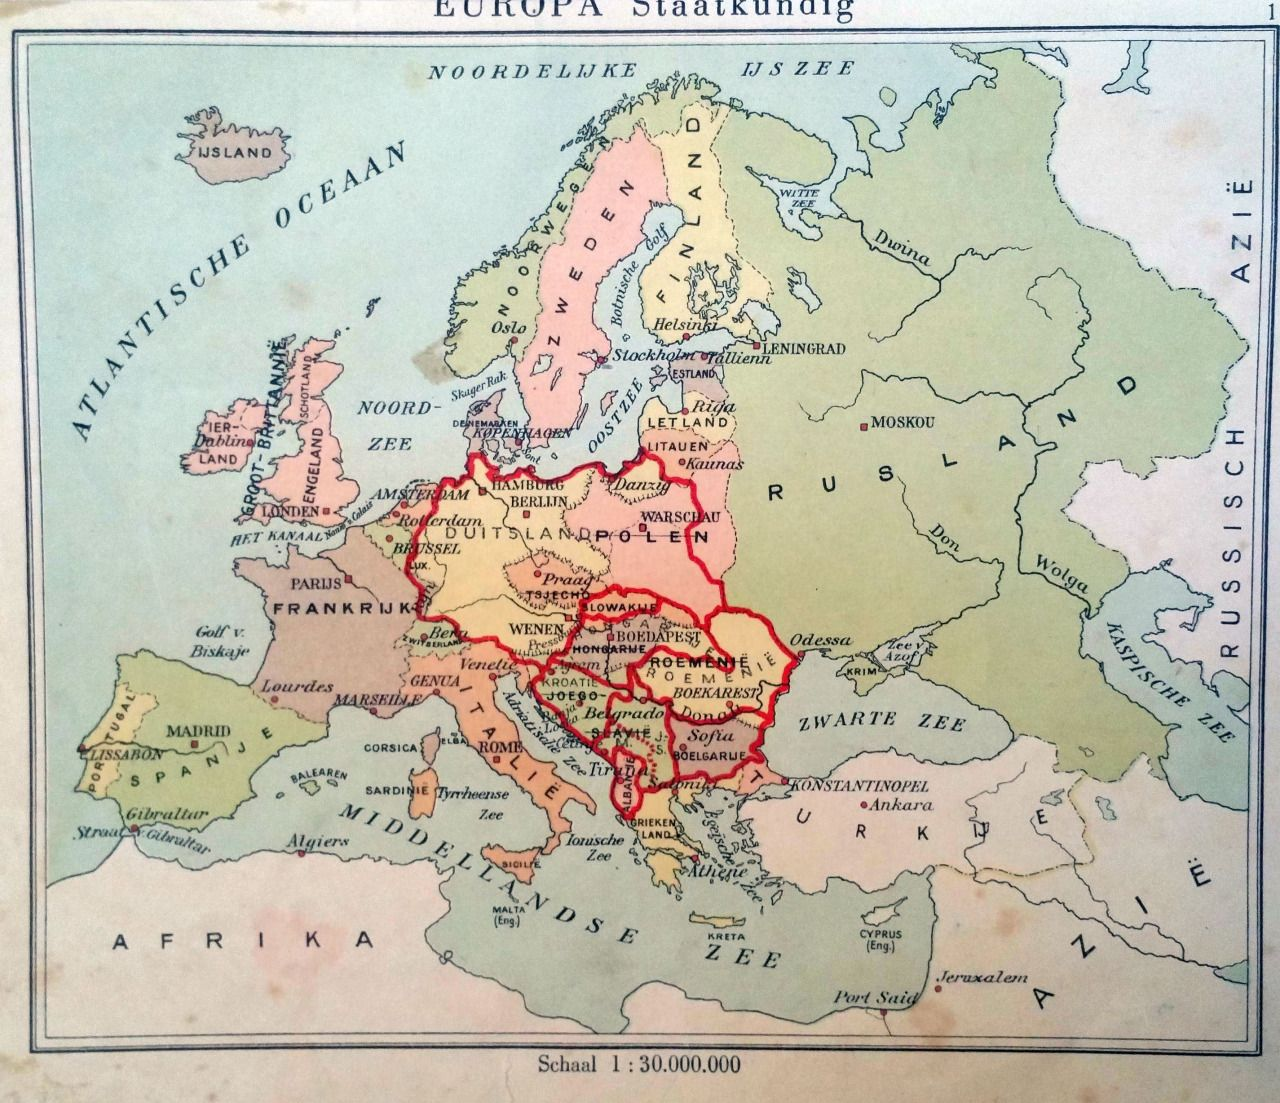 map of europe in 1940s Pin on Maps